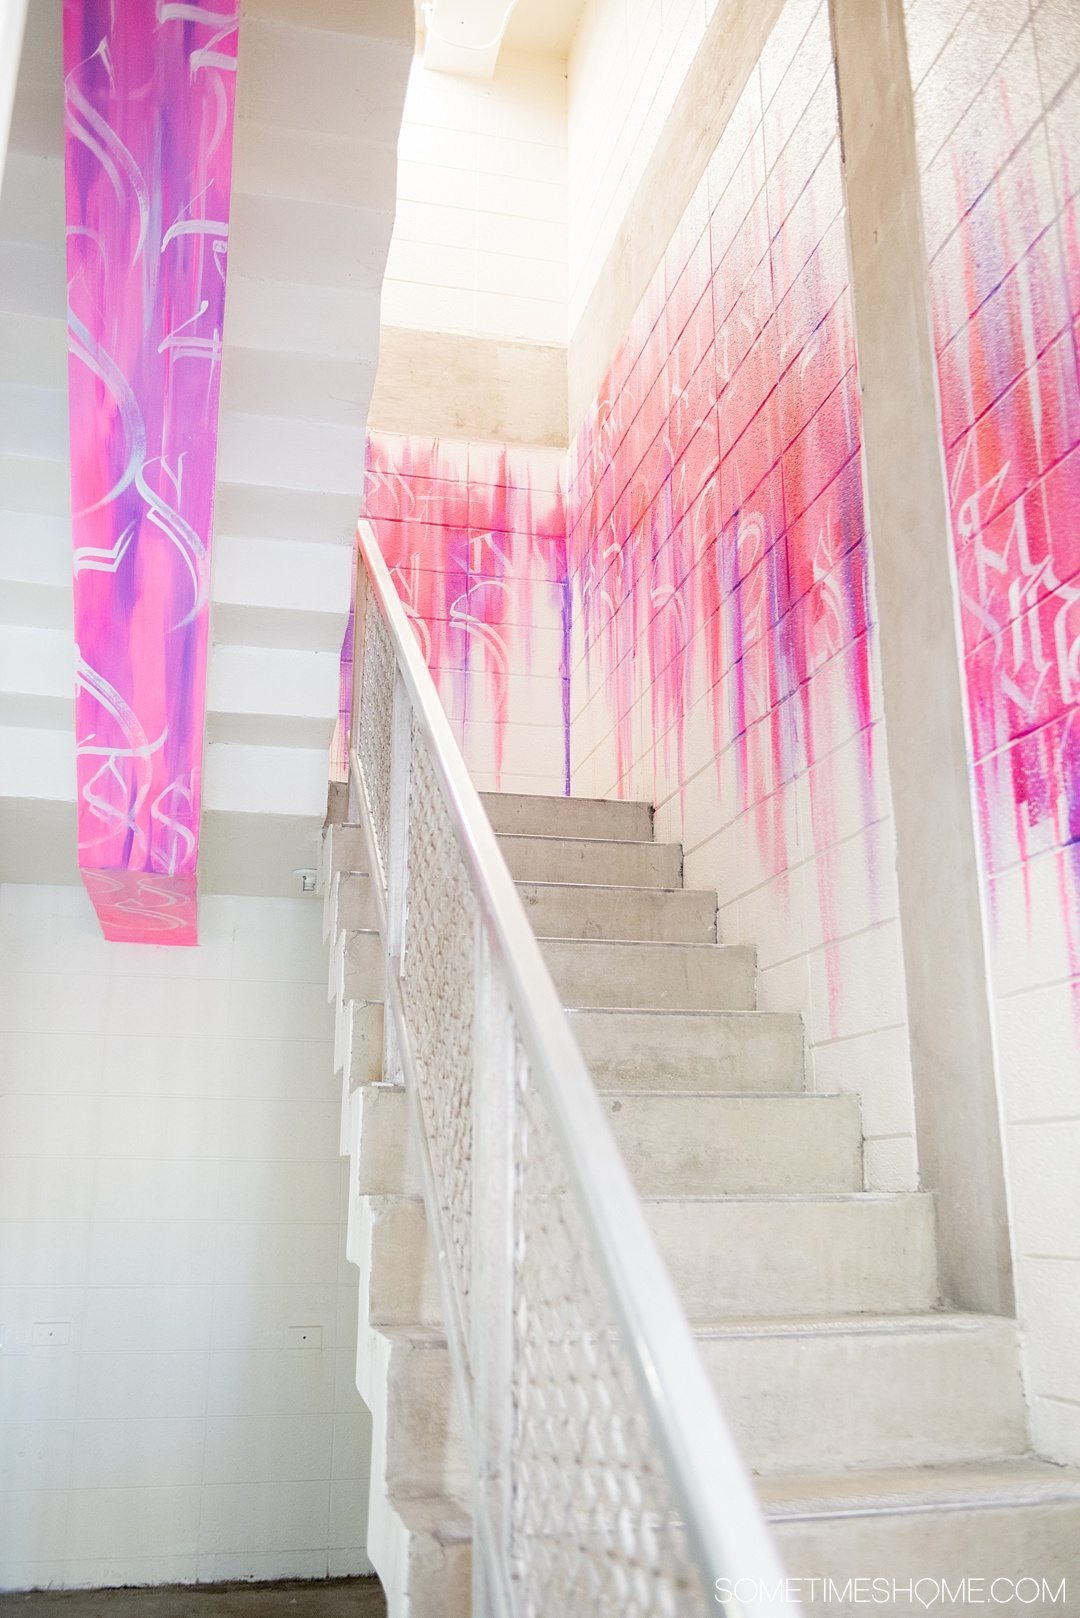 Unscripted Hotel Review Durham in North Carolina. Photos and information on Sometimes Home travel blog. Picture of the pink and purple graffiti painted staircase.